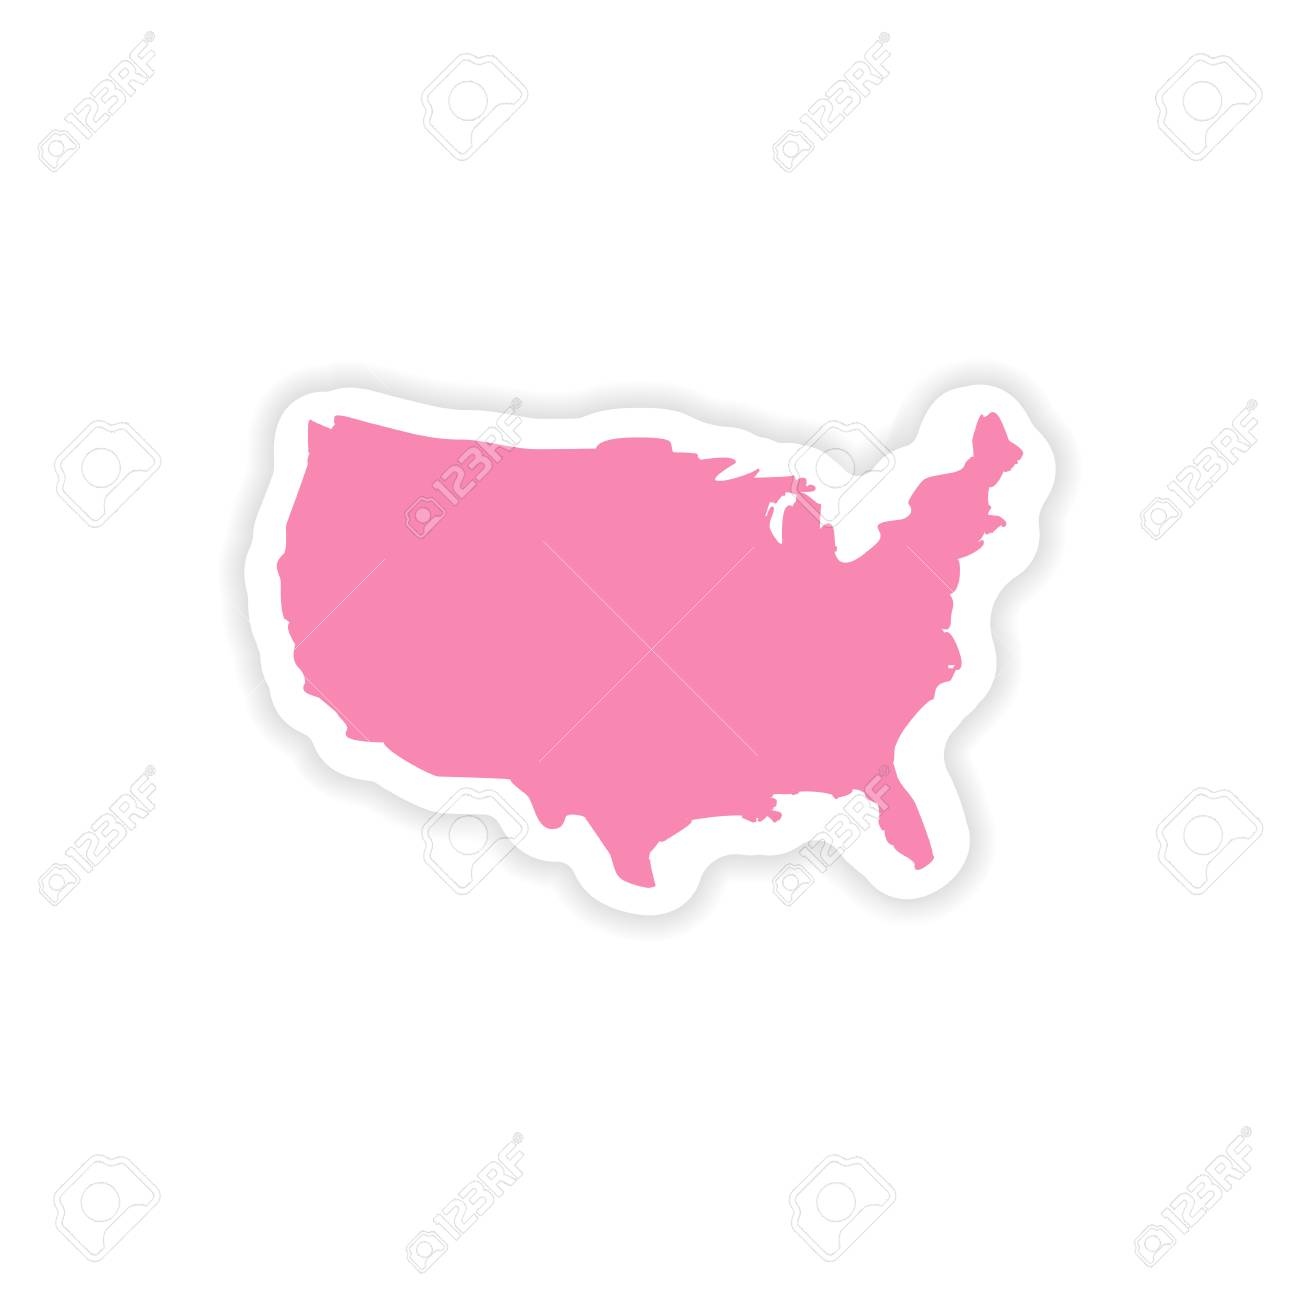 paper sticker map of USA on white background - 87617209